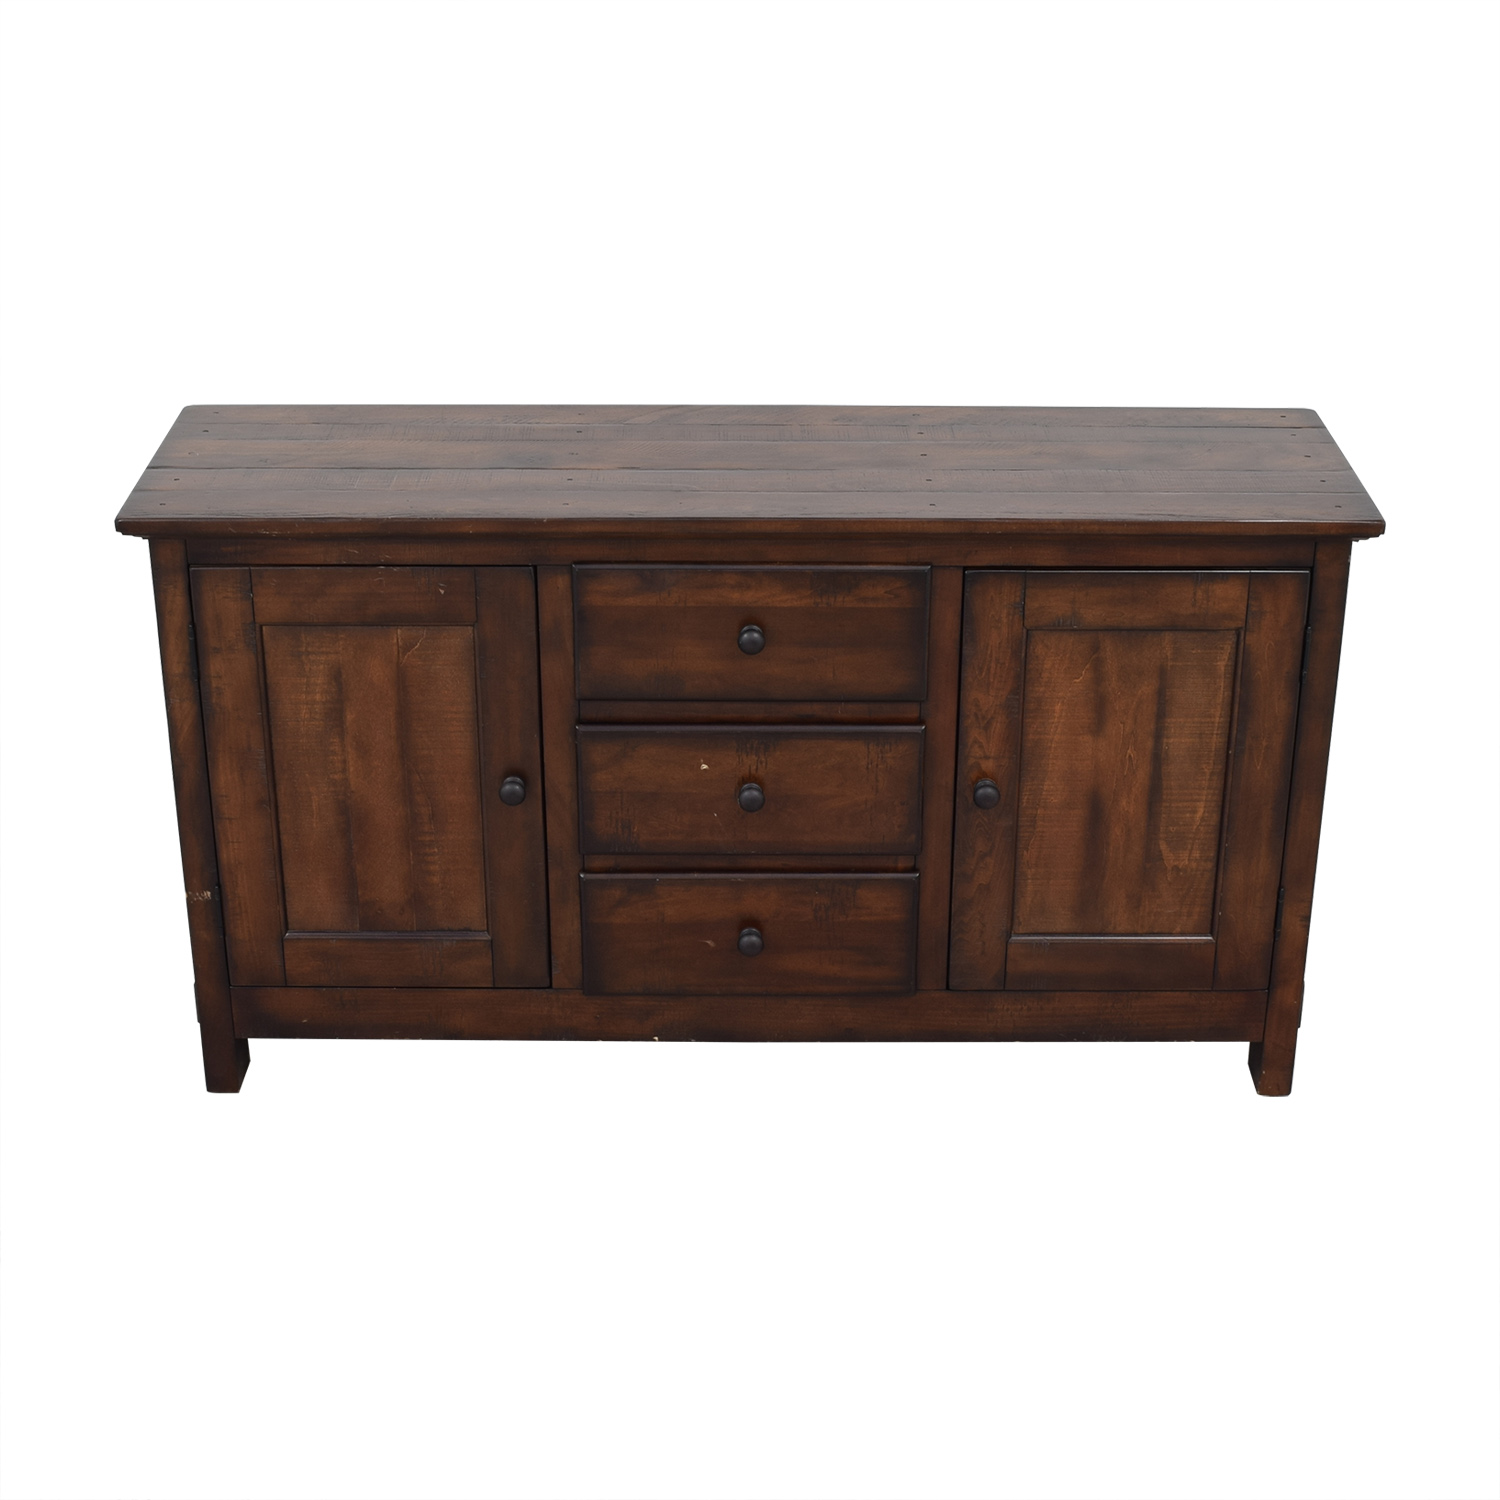 Pottery Barn Benchwright Buffet / Cabinets & Sideboards